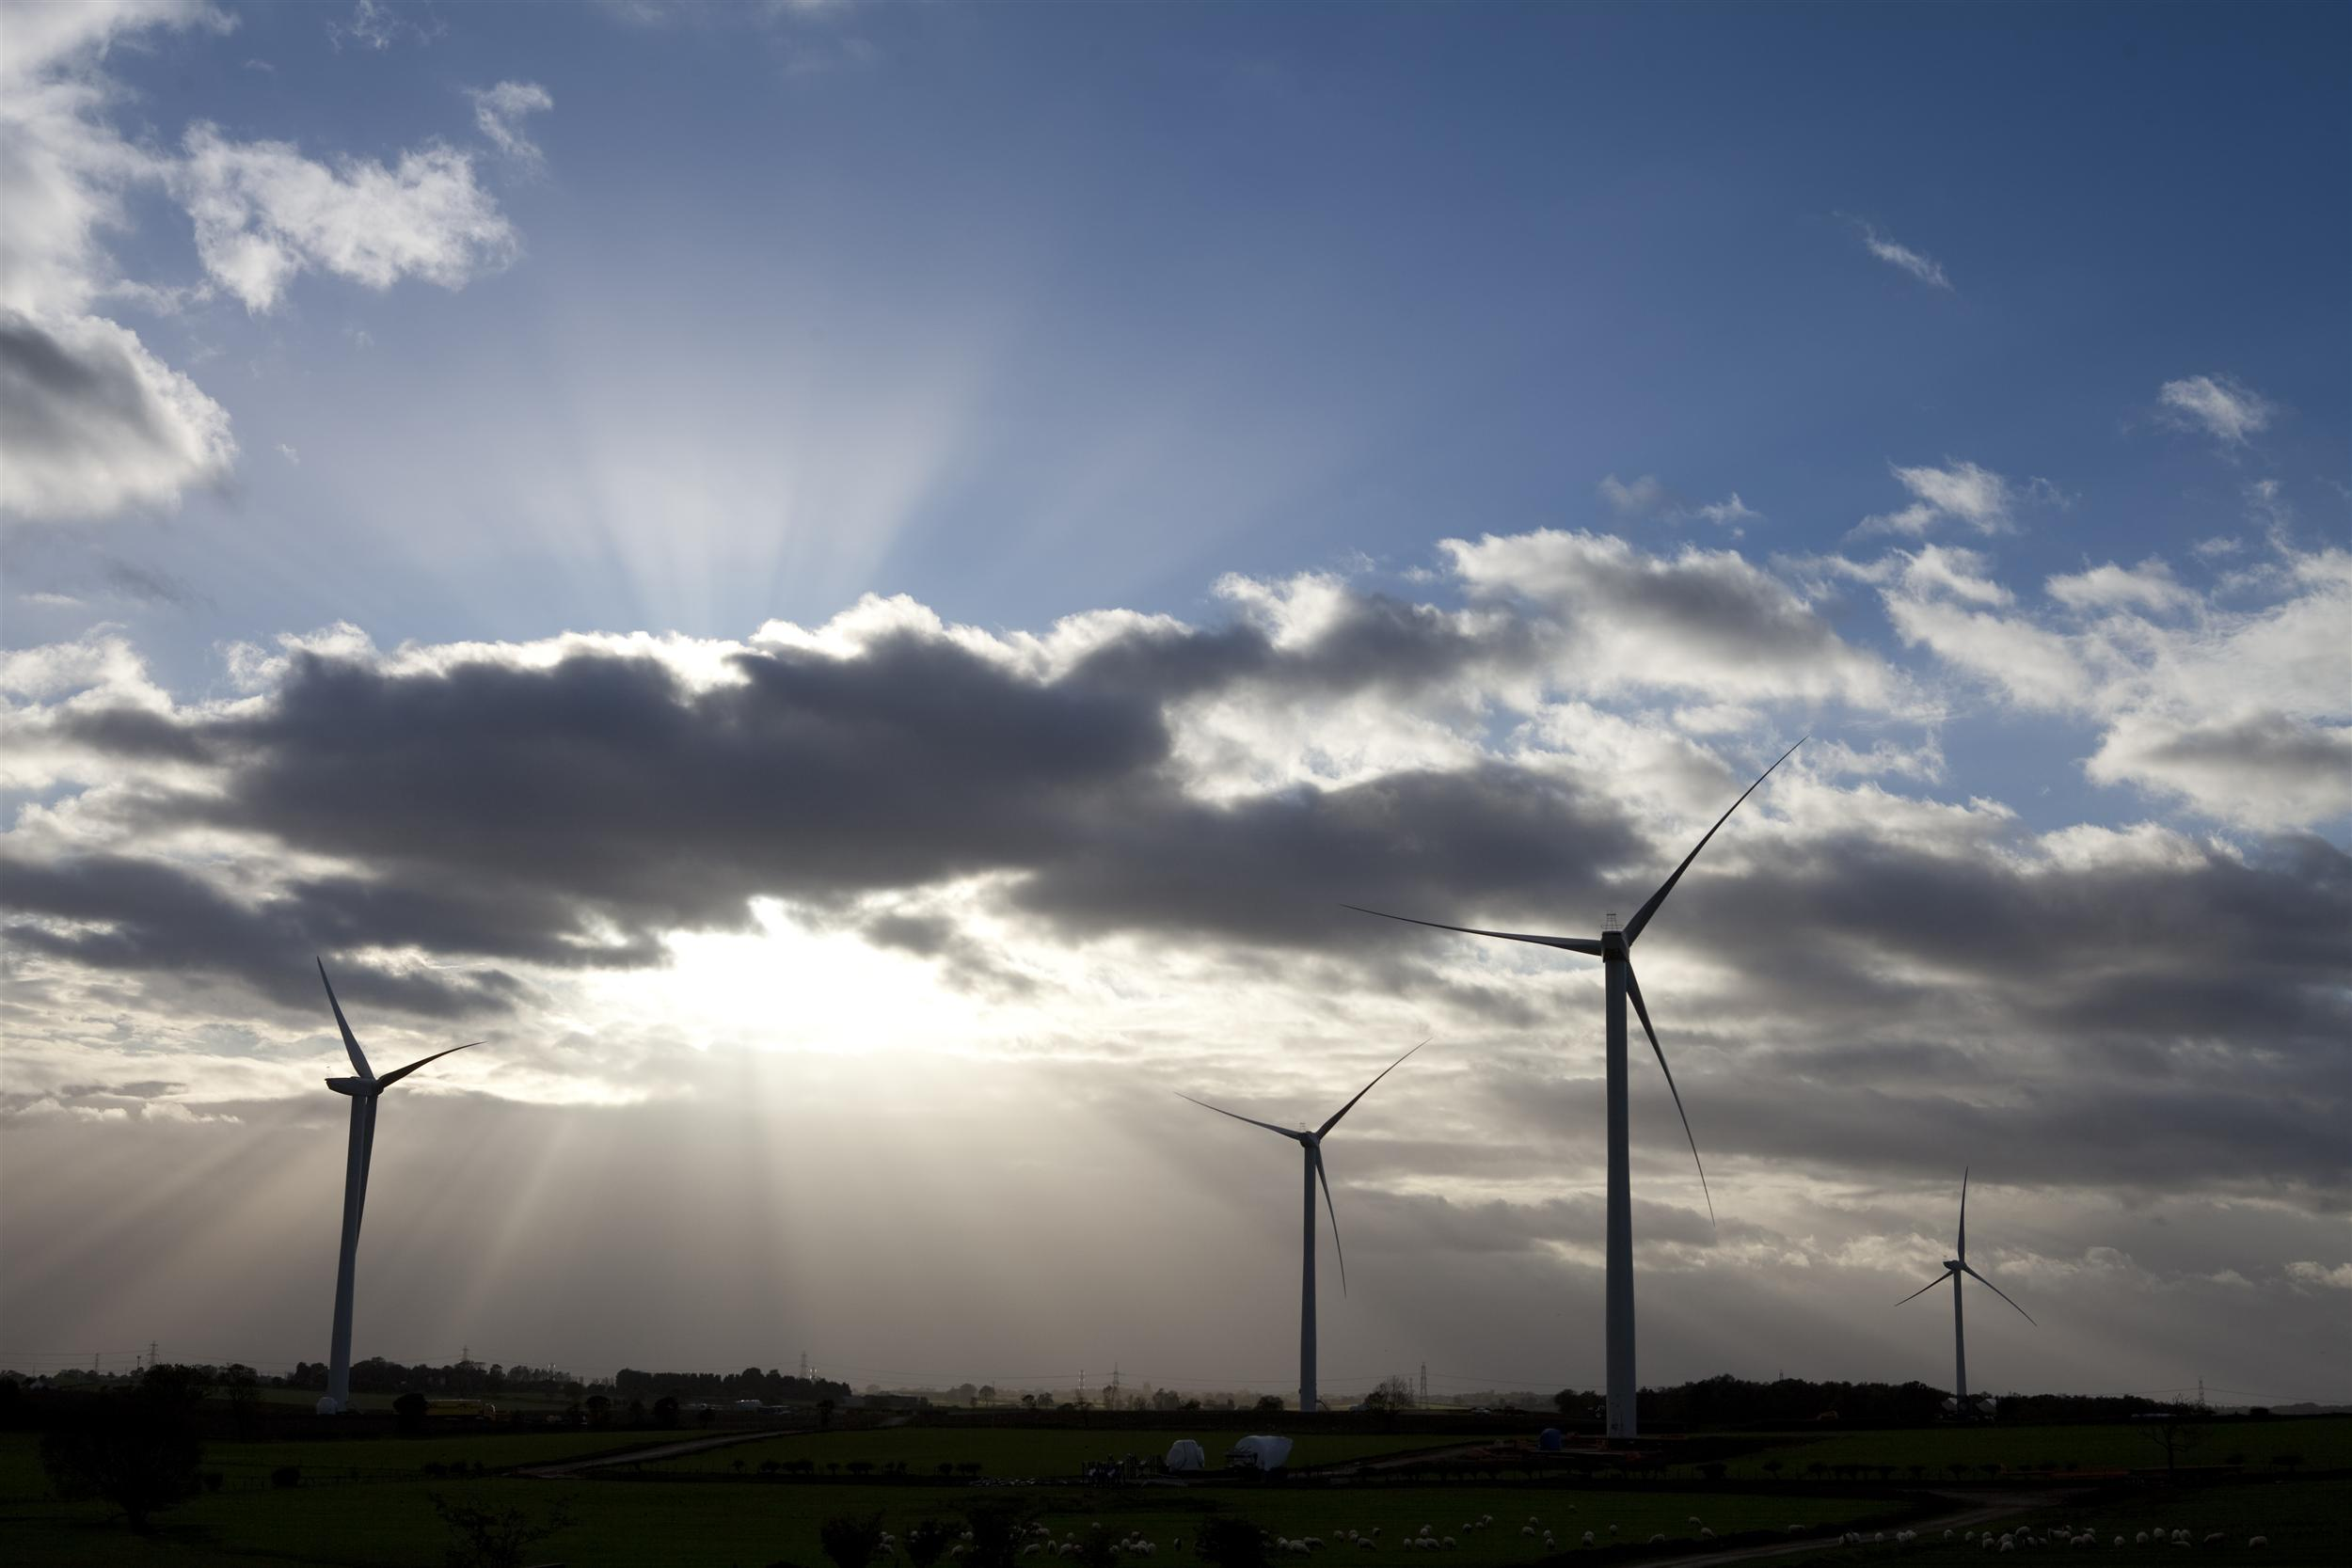 Wind turbines with sunshine and clouds in the background